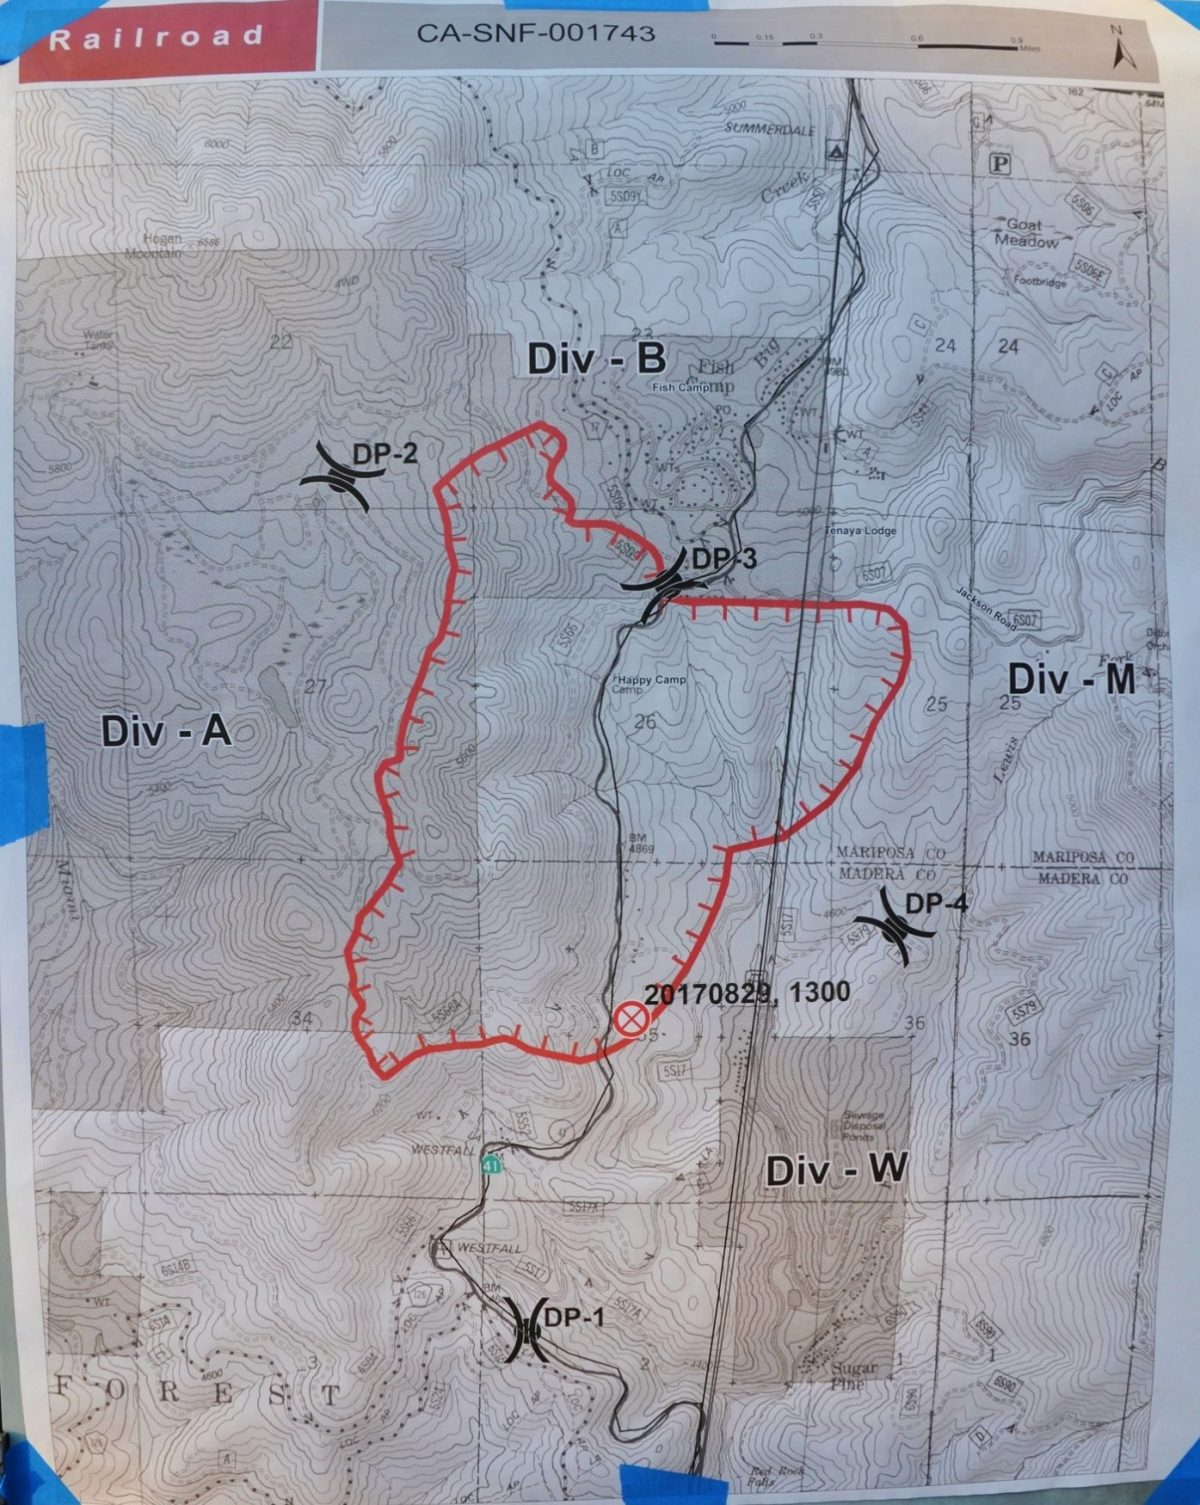 Railroad Fire Perimeter Map 8 30 17